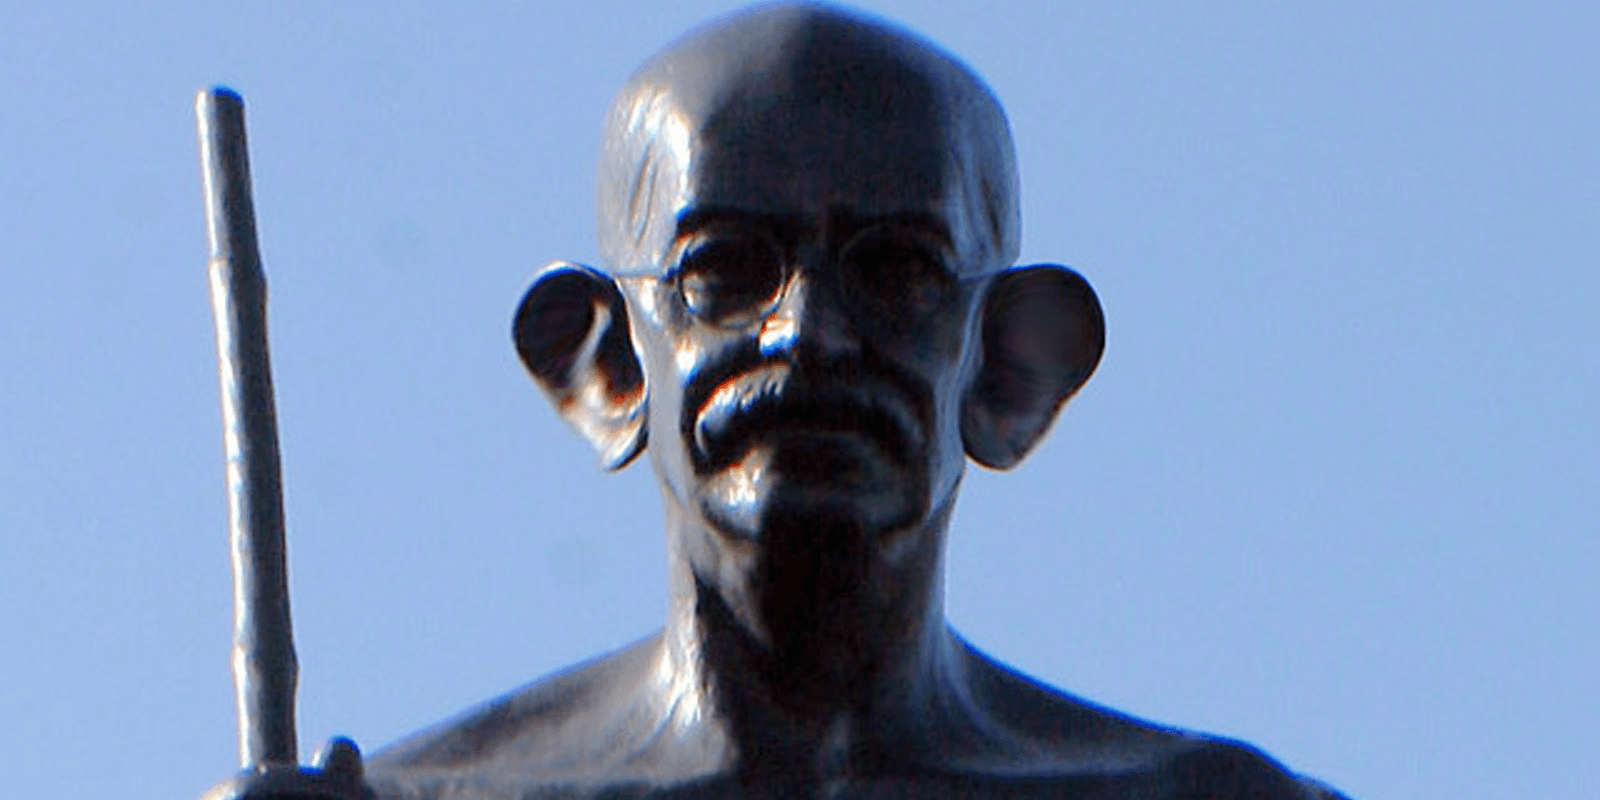 Protesters demand the take-down of Gandhi statue—charge him with racism